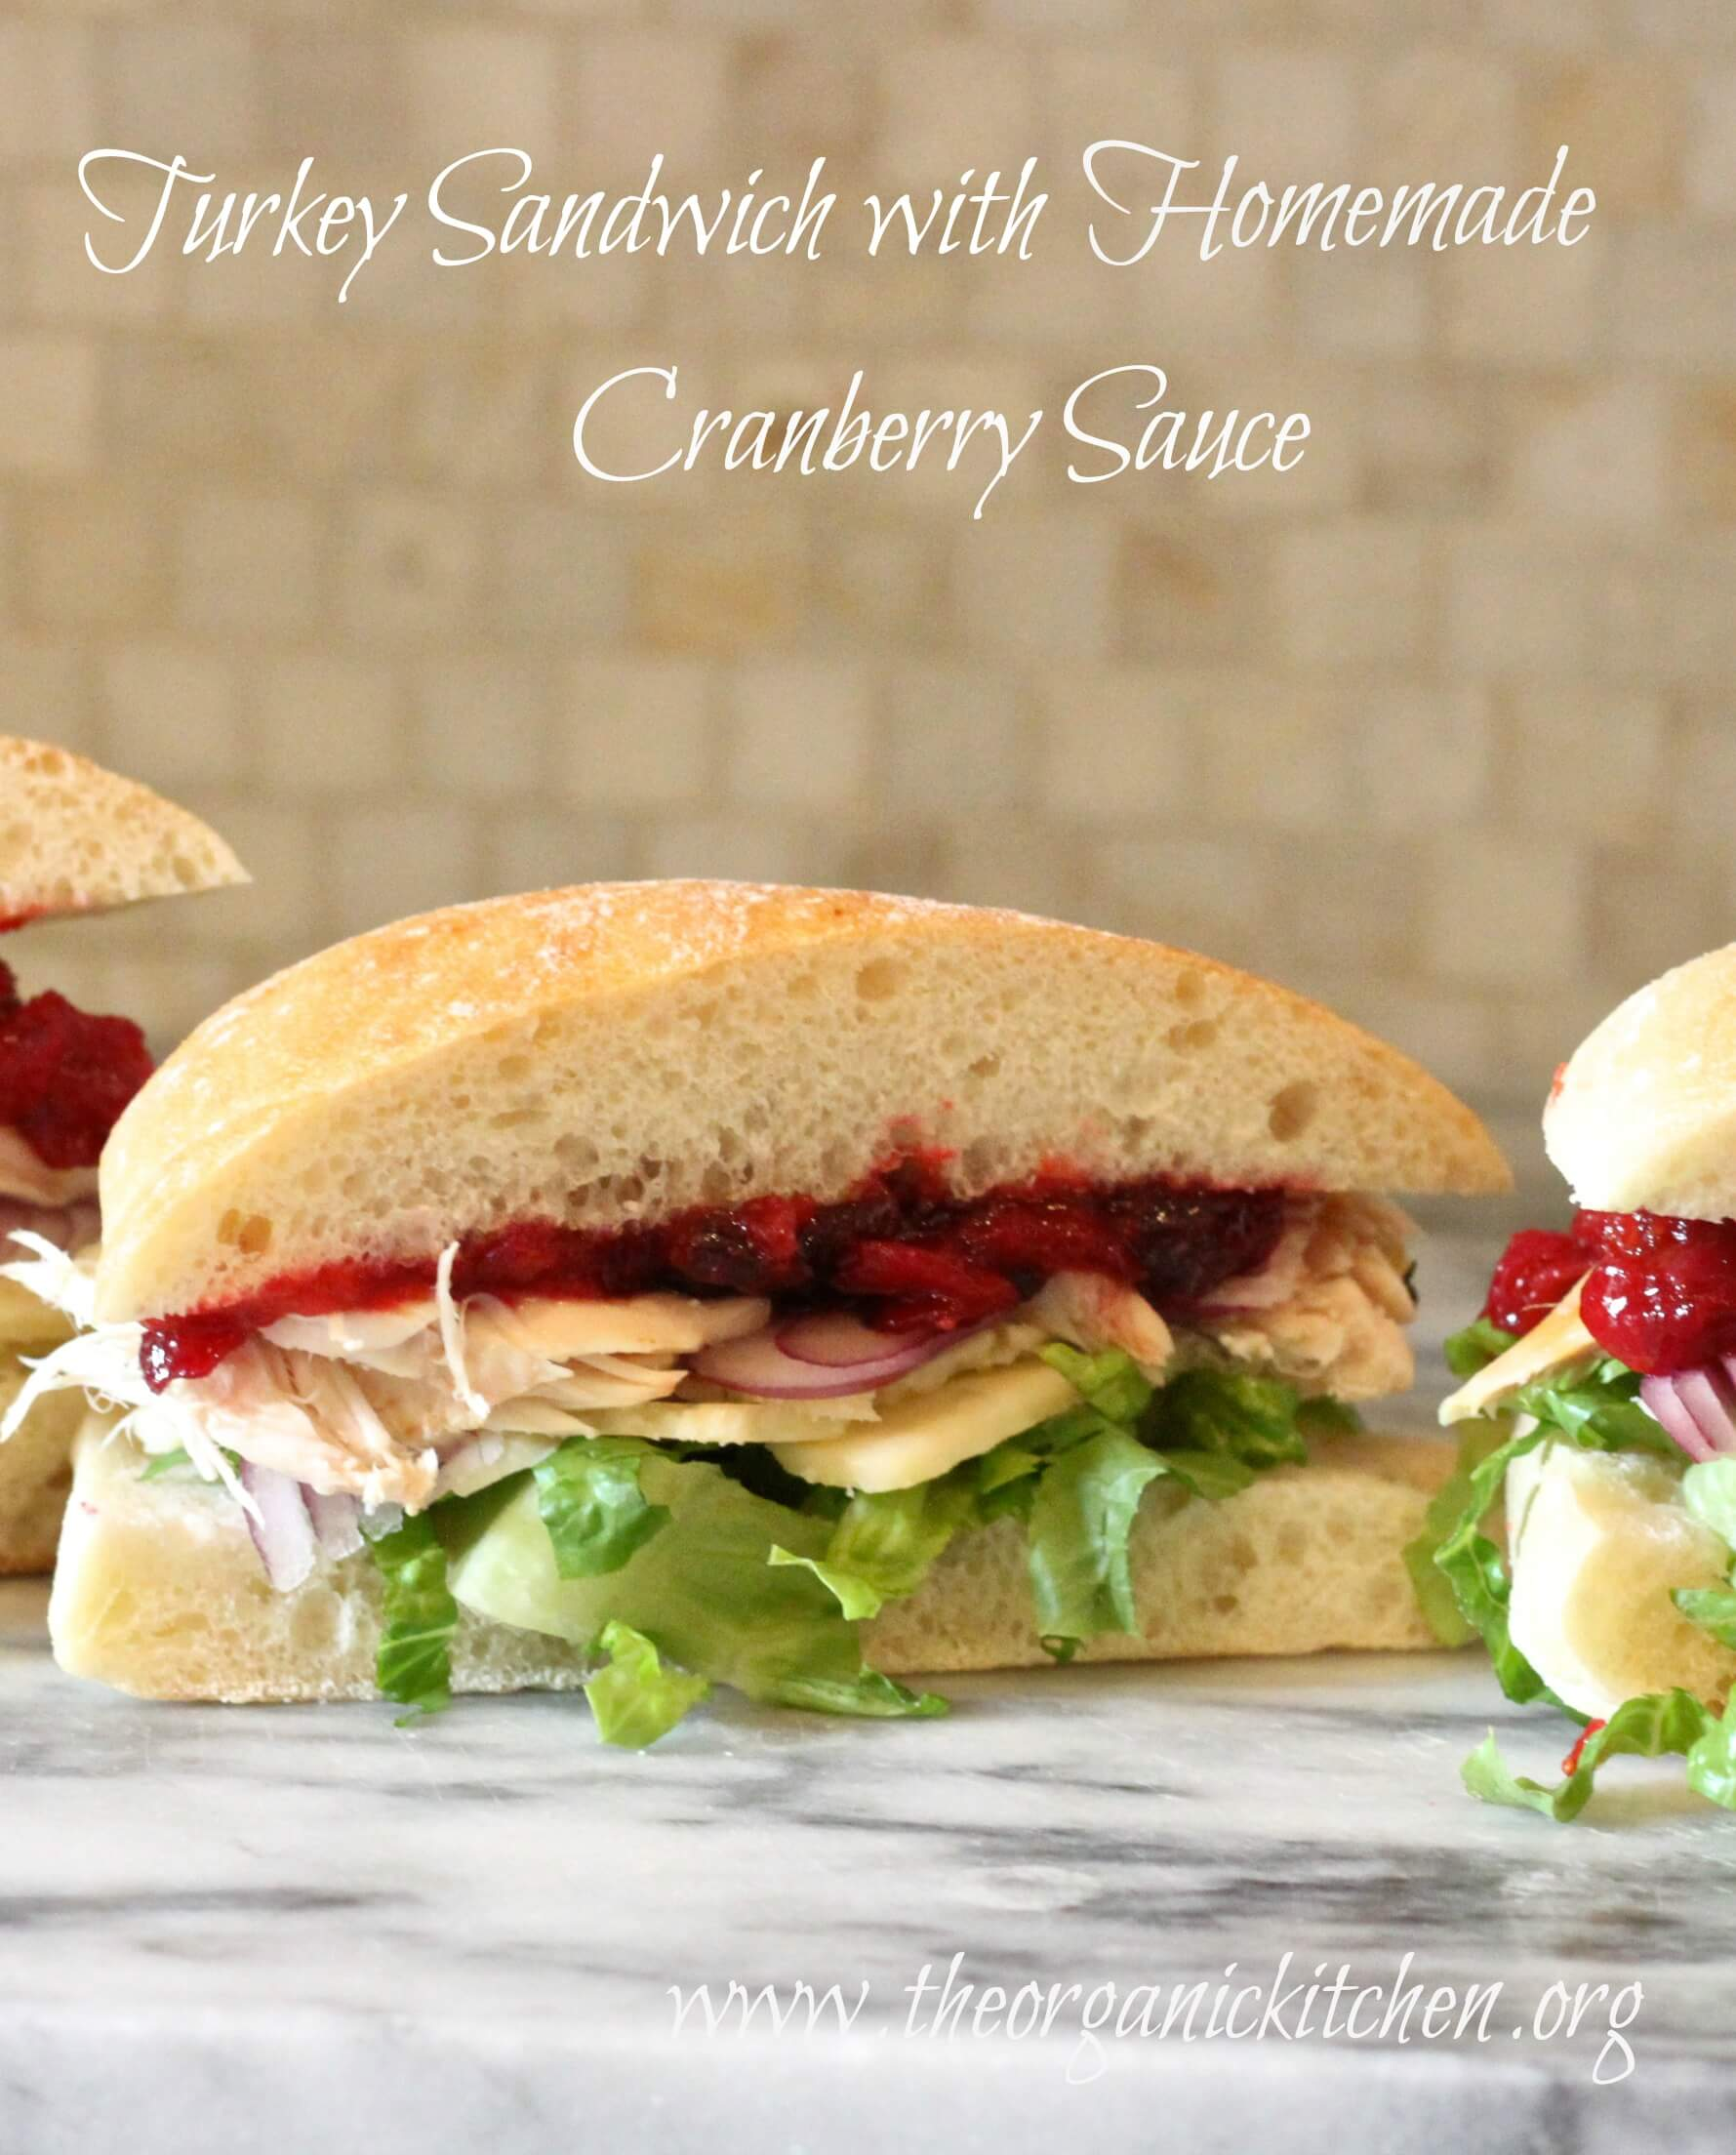 Turkey Sandwich with Homemade Cranberry Sauce from The Organic Kitchen